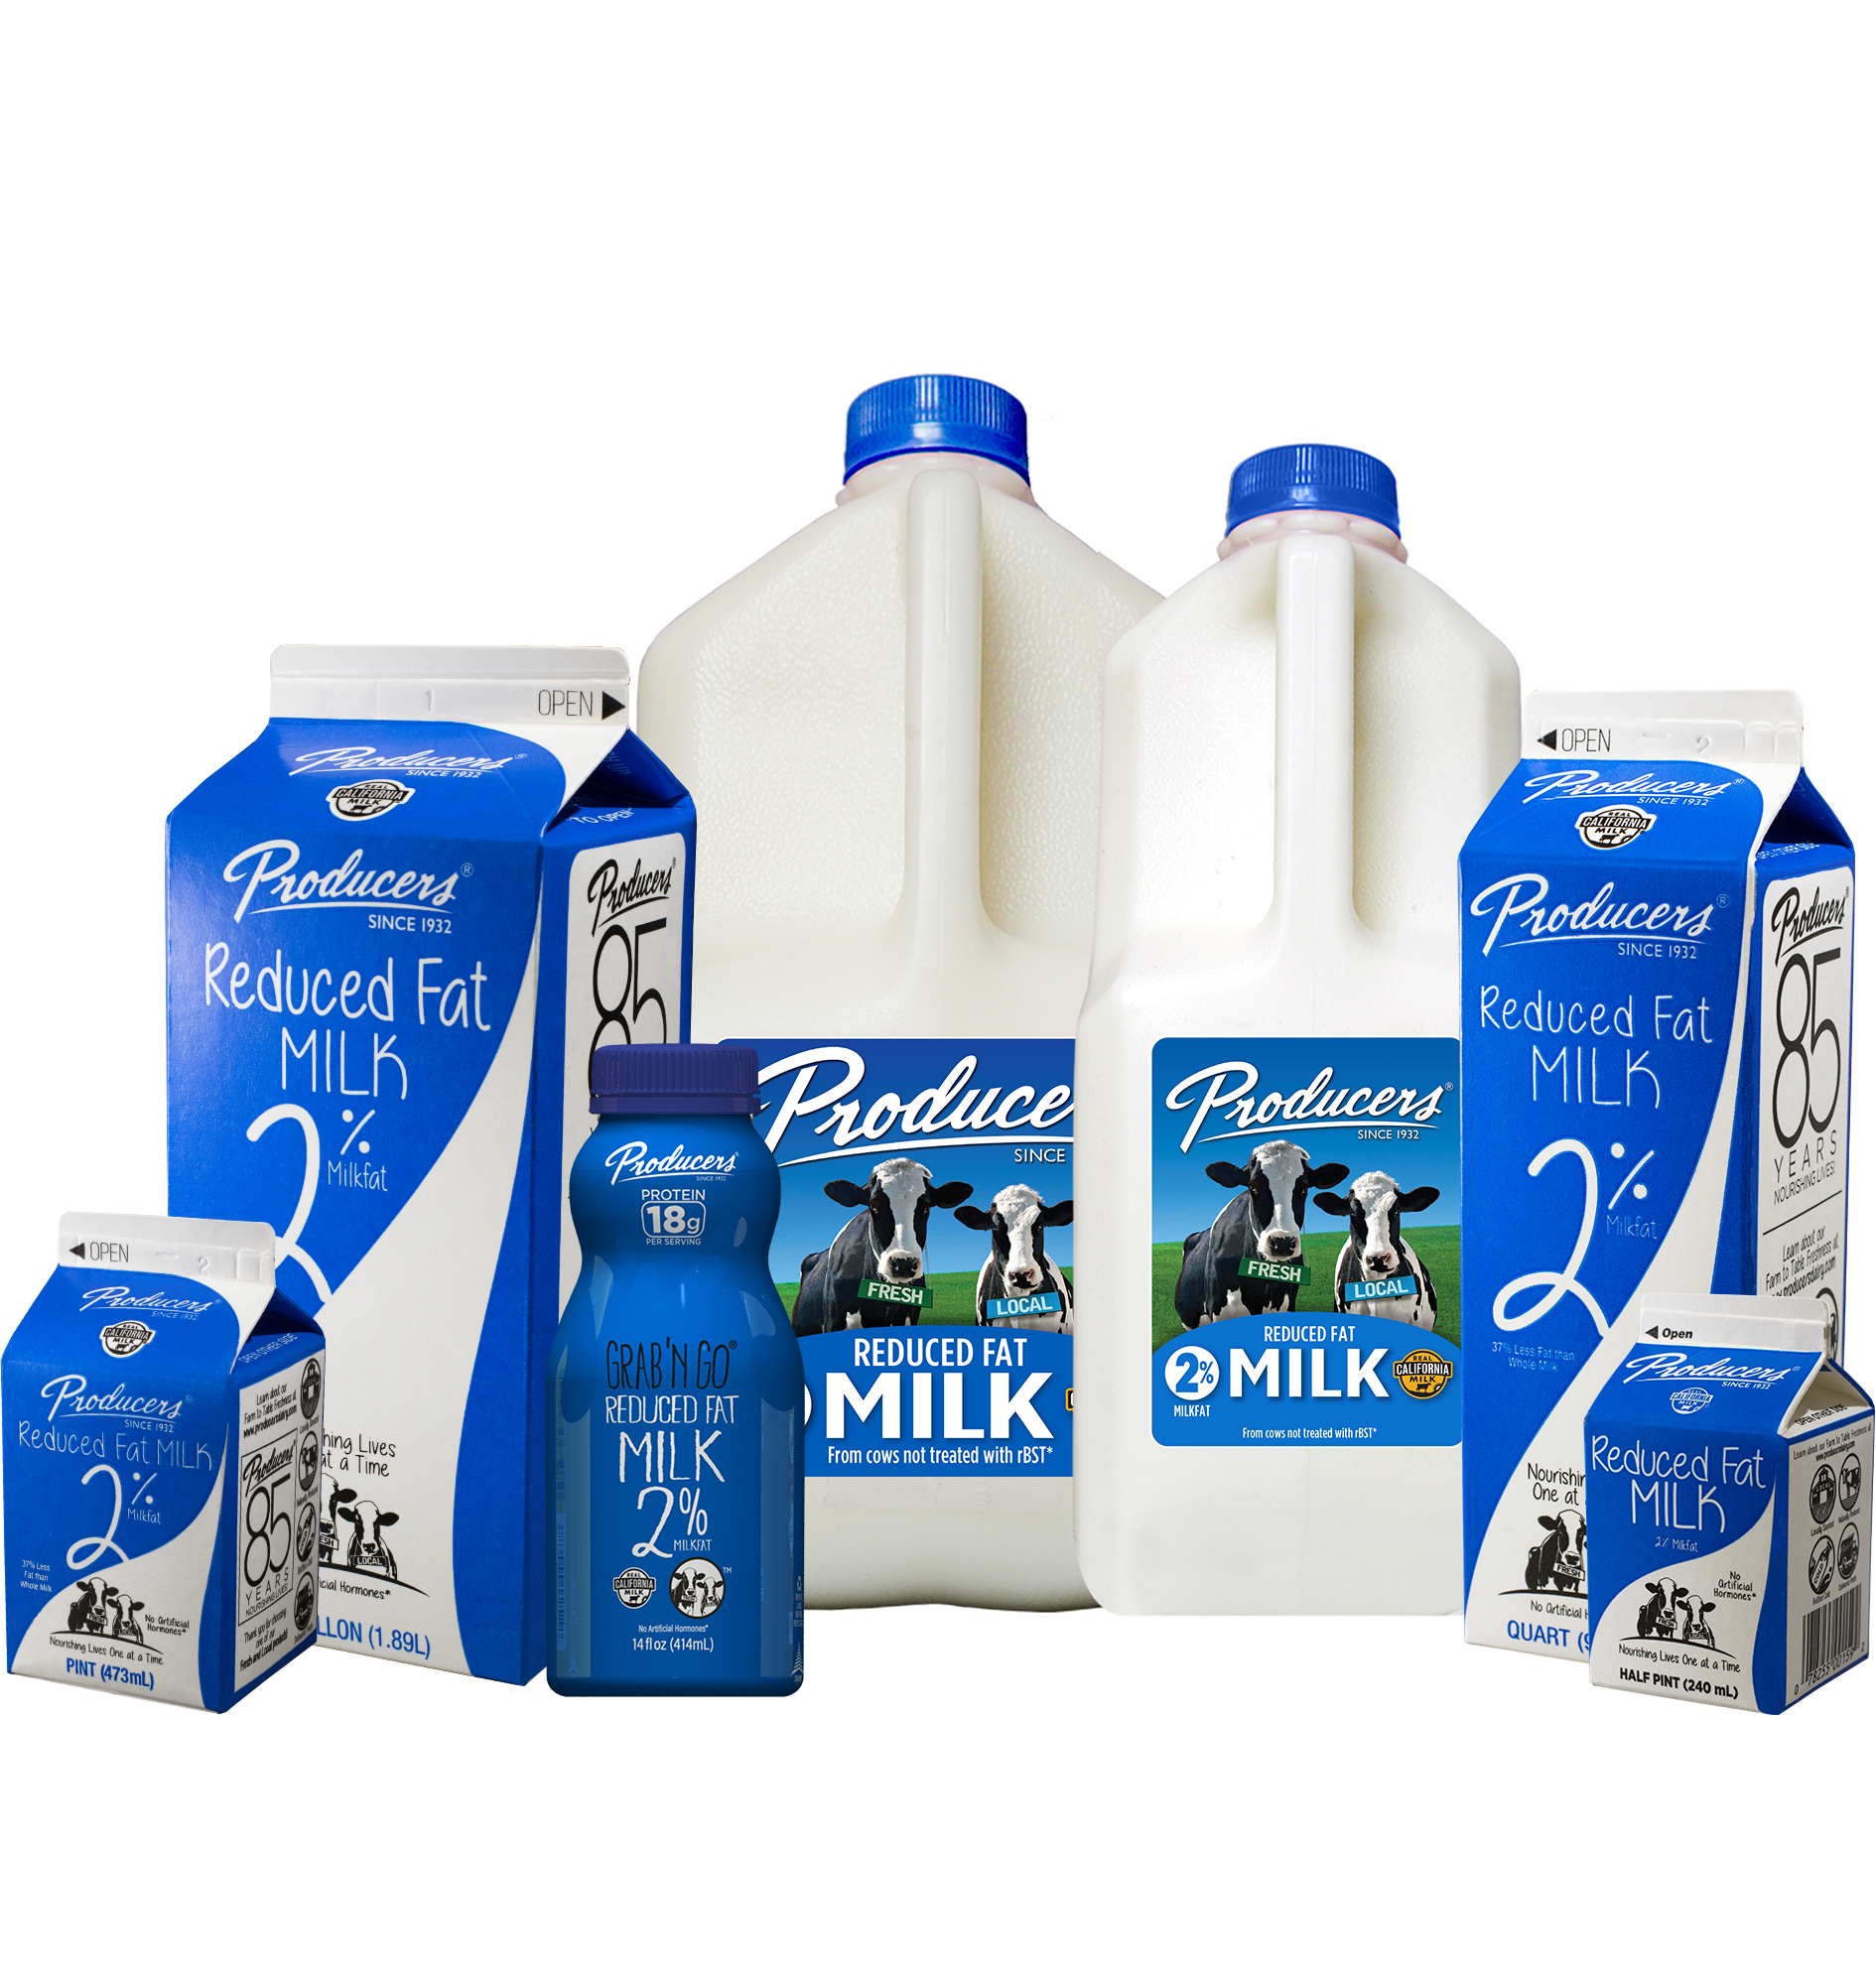 Producers Reduced Fat Milk Family: Gallon, Half Gallon Plastic, Half Gallon Carton, Quart, Grab N Go, Pint, Half Pint